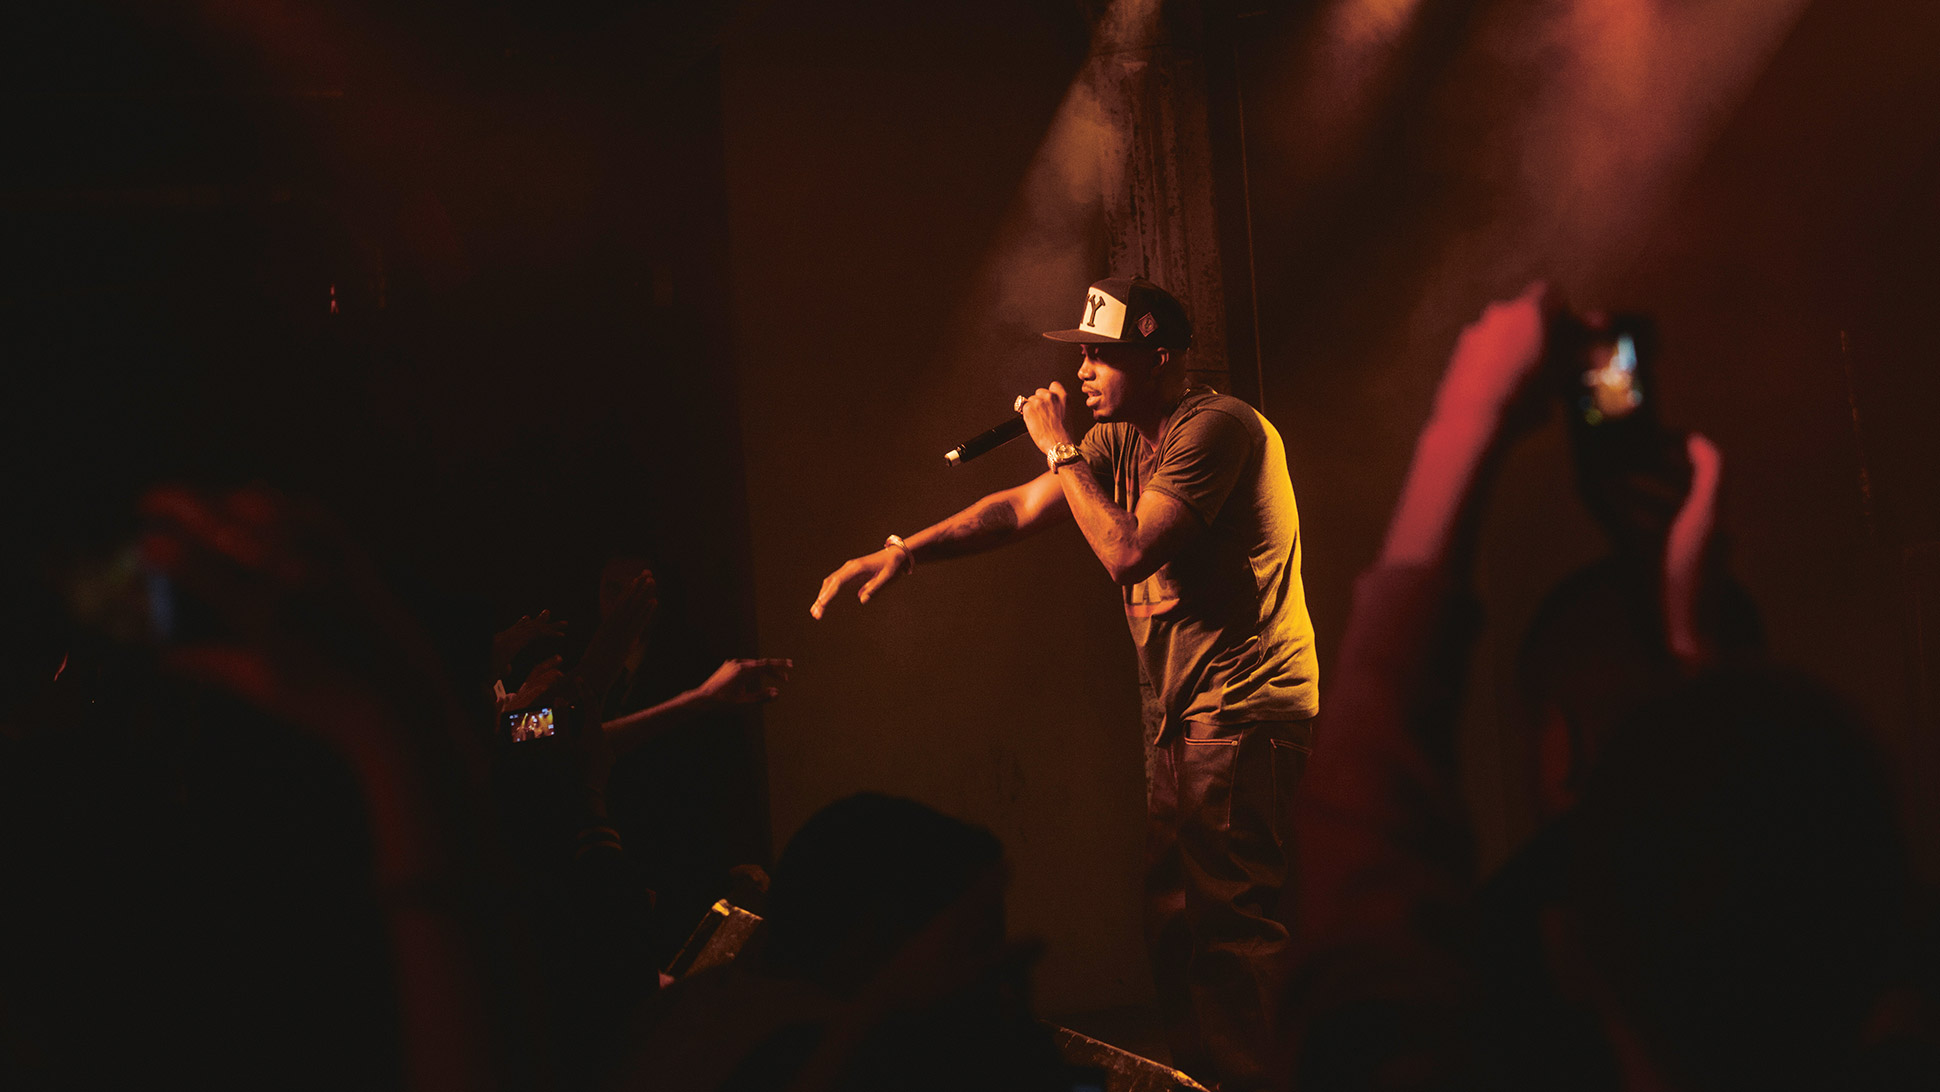 Nas Wallpaper Iphone Nas rapper rap hip hop concert 1940x1092